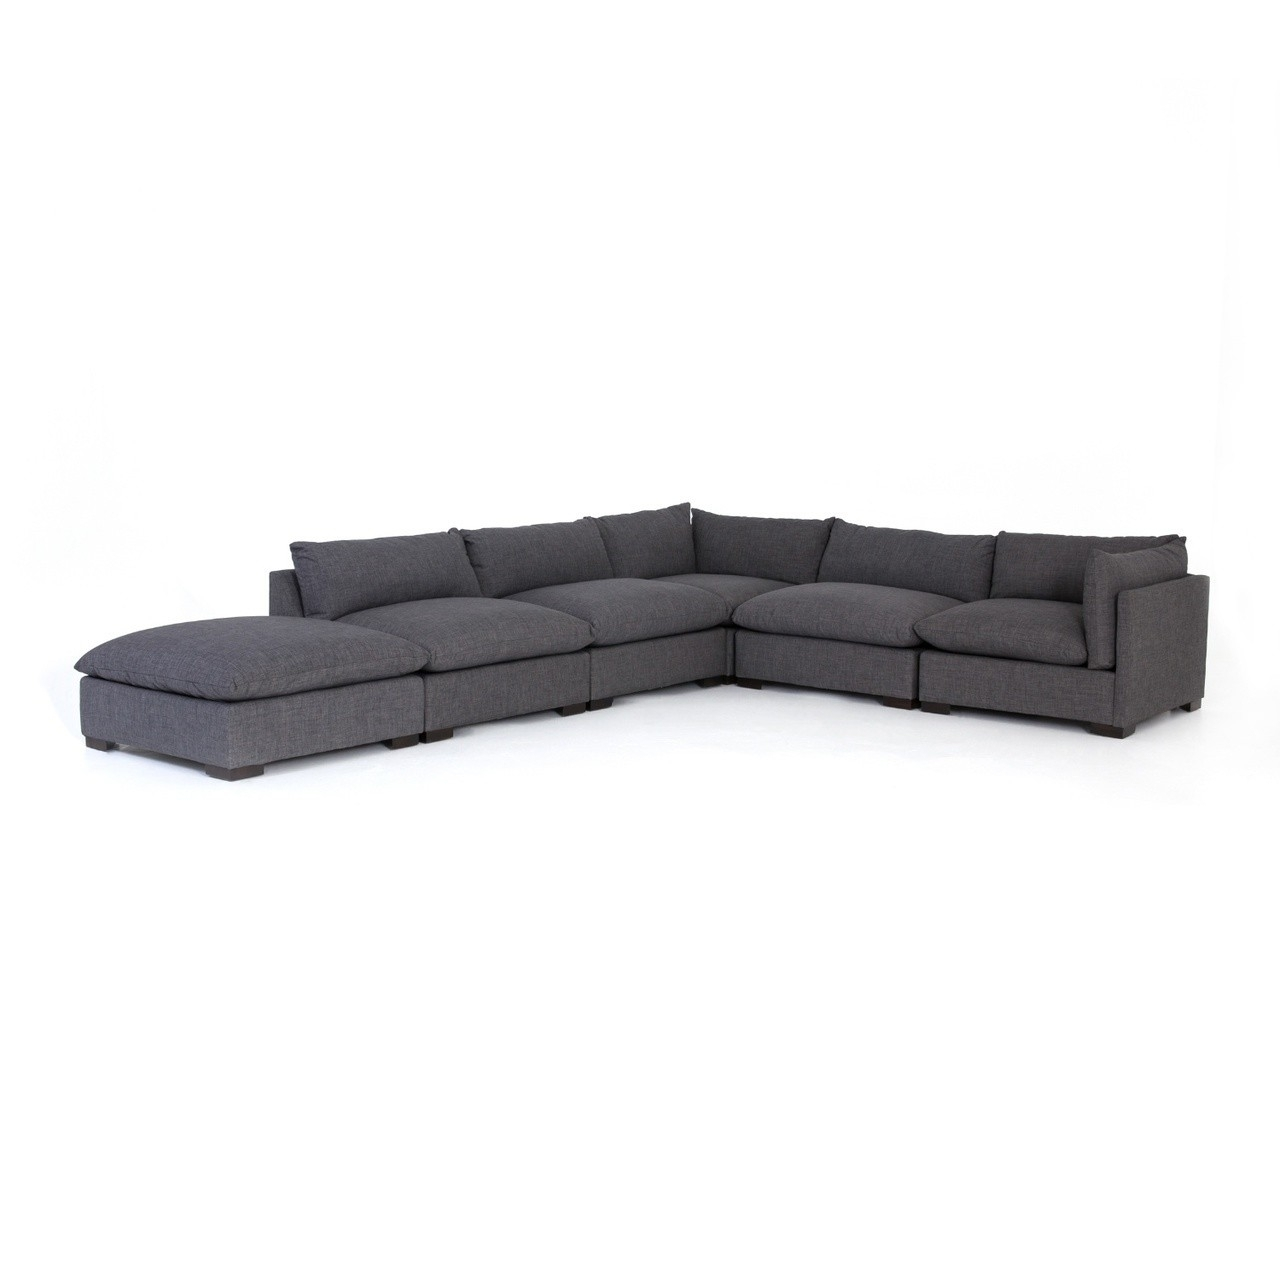 6 Piece Sectional Couch Marcus Grey W Power Headrest Usb Living Within Marcus Grey 6 Piece Sectionals With Power Headrest & Usb (View 9 of 25)